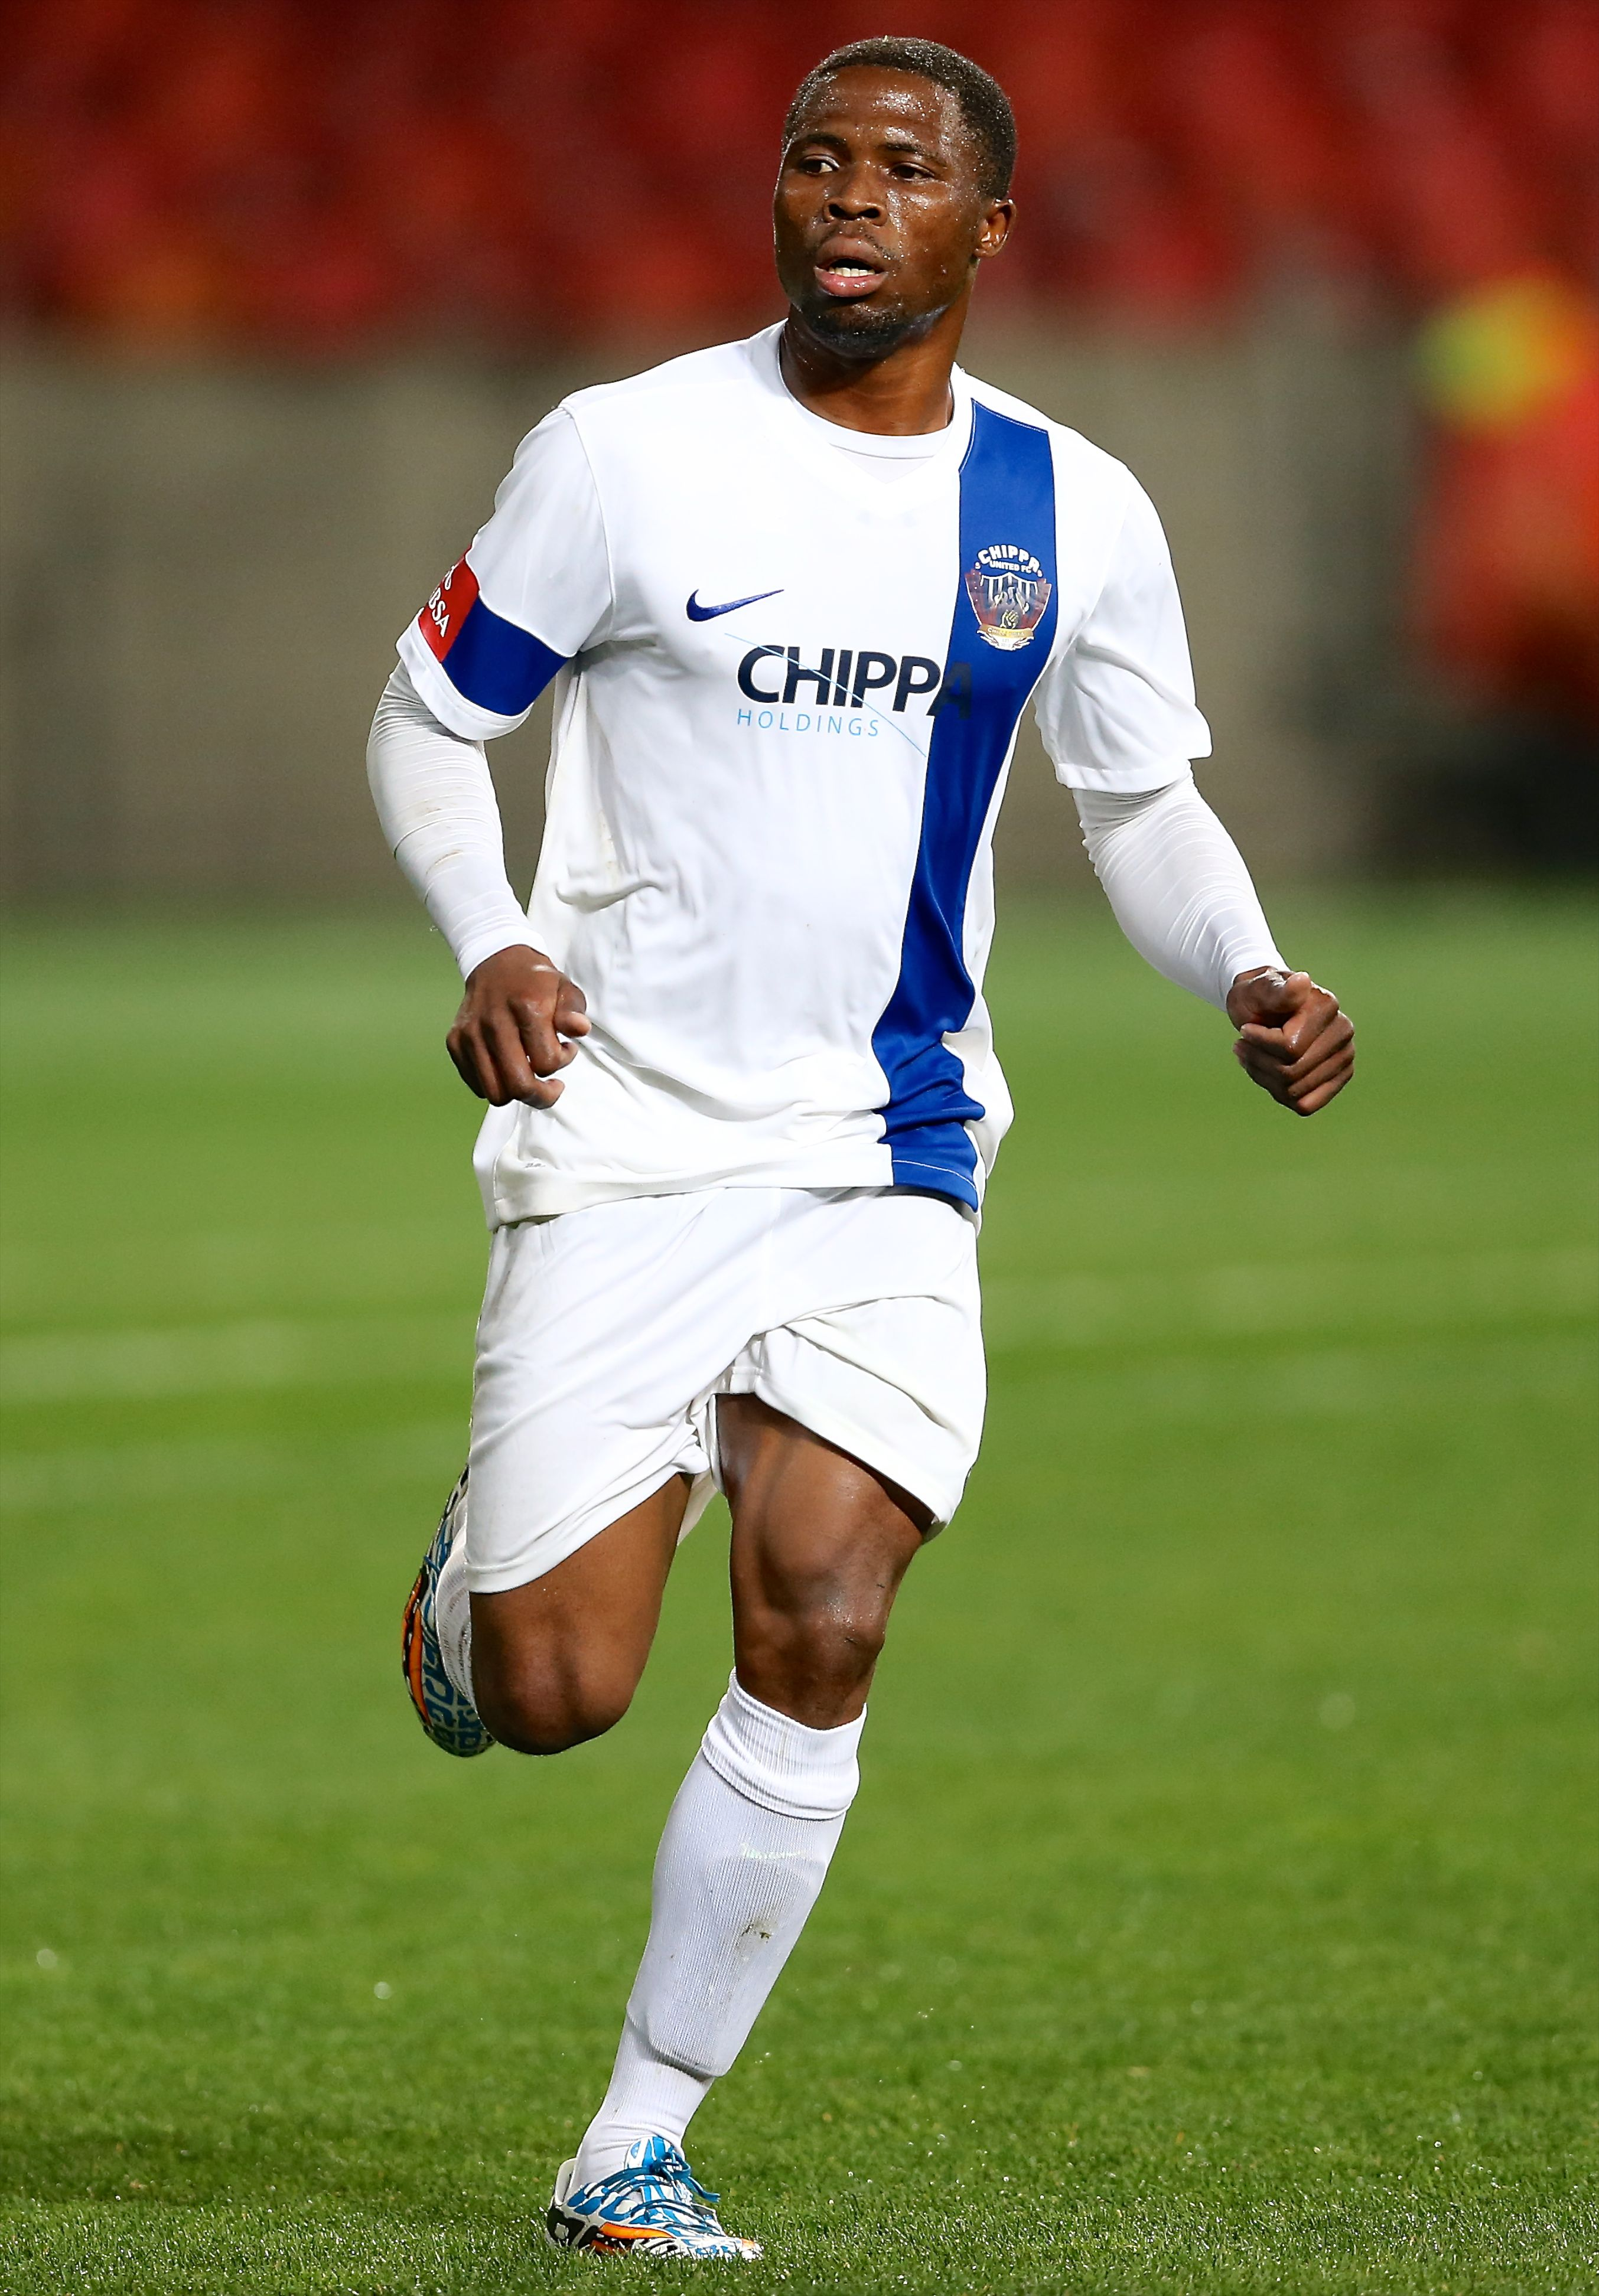 Chiefs-bound?: (Photo by Richard Huggard/Gallo Images)